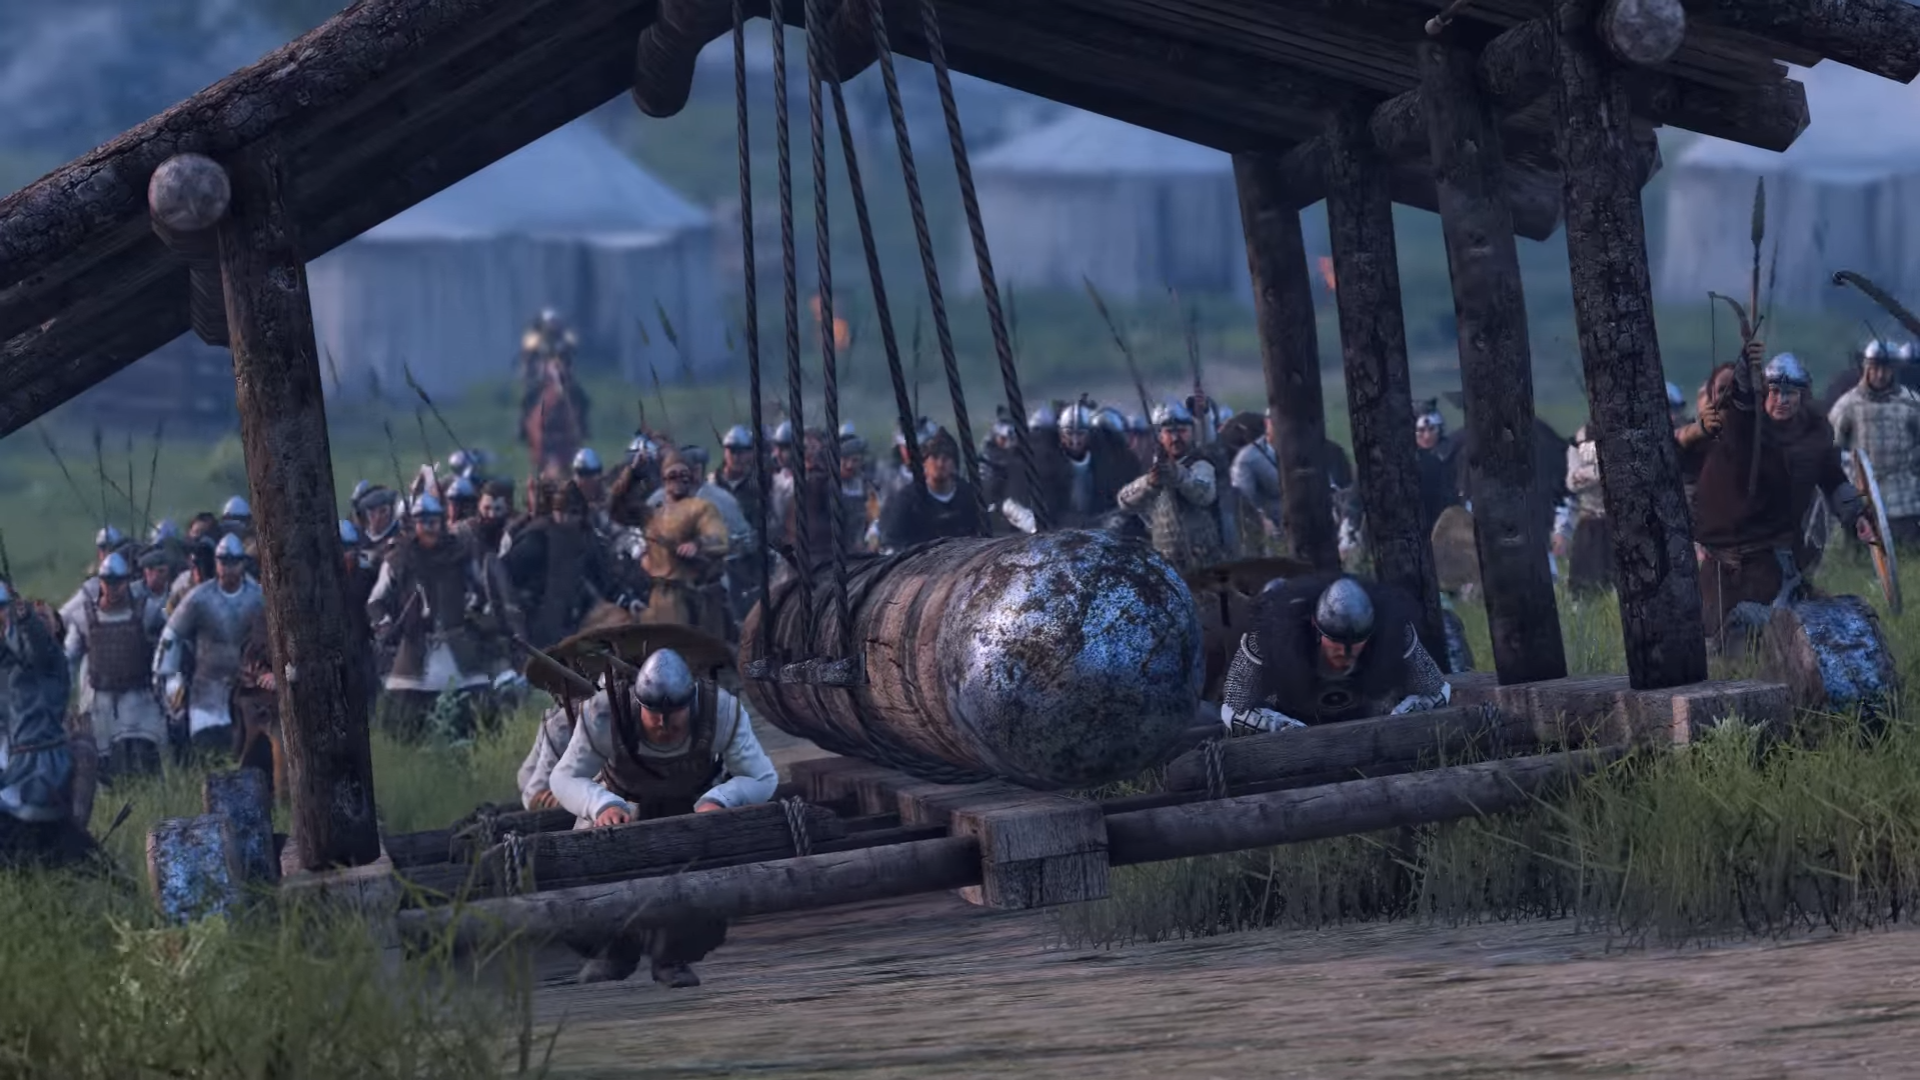 Mount and Blade 2 promises to improve the siege mechanics of its predecessor.